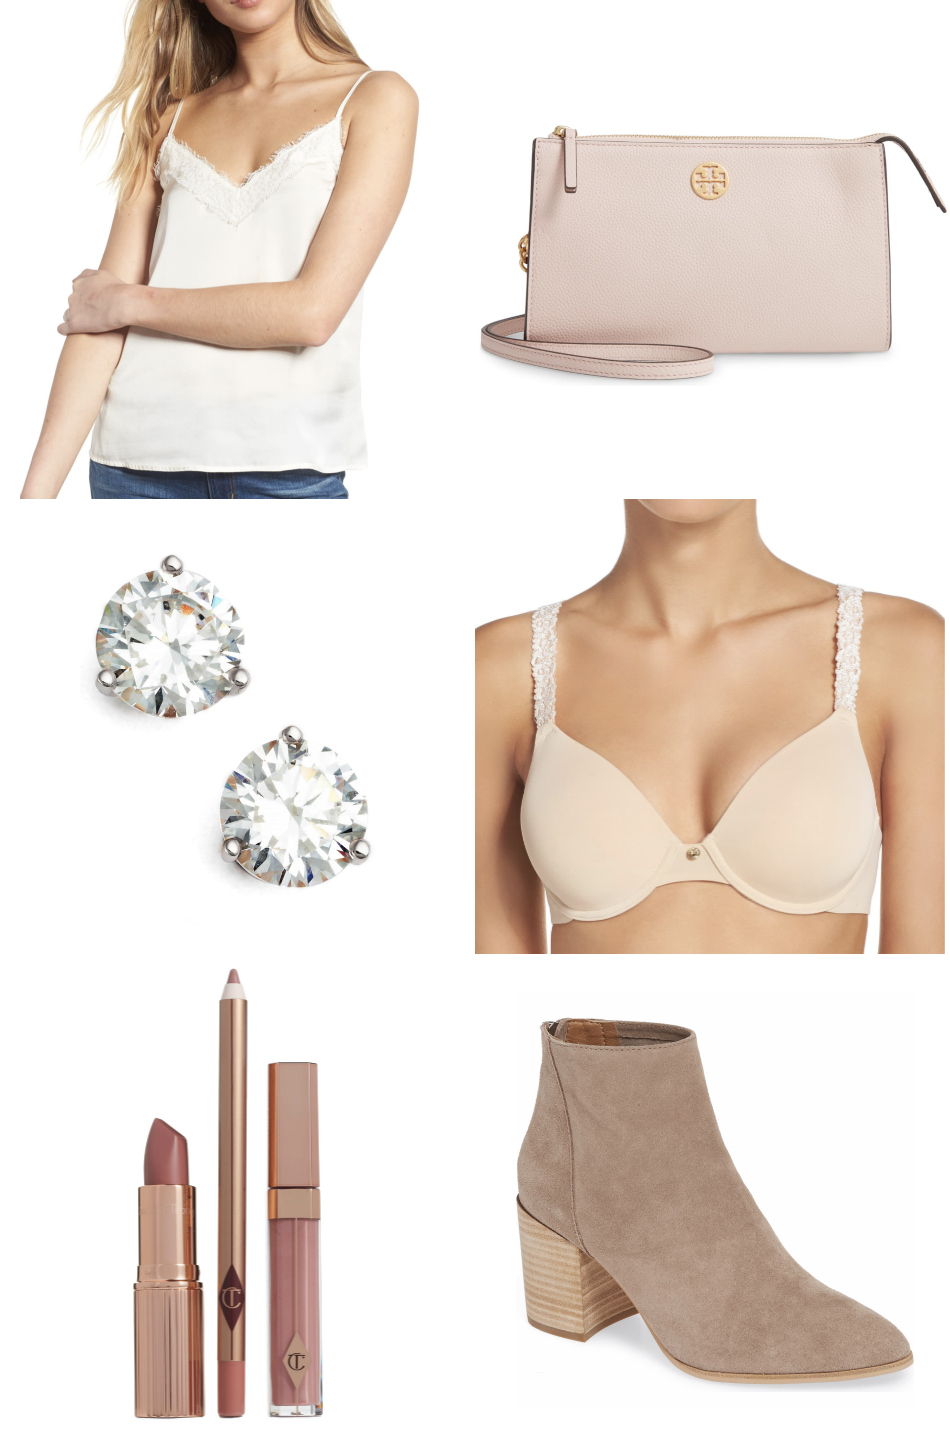 Mash Elle fashion style blogger | beauty blogger | Nordstrom sale | Nordstrom fashion | summer Style | tan bag | cami | diamonds